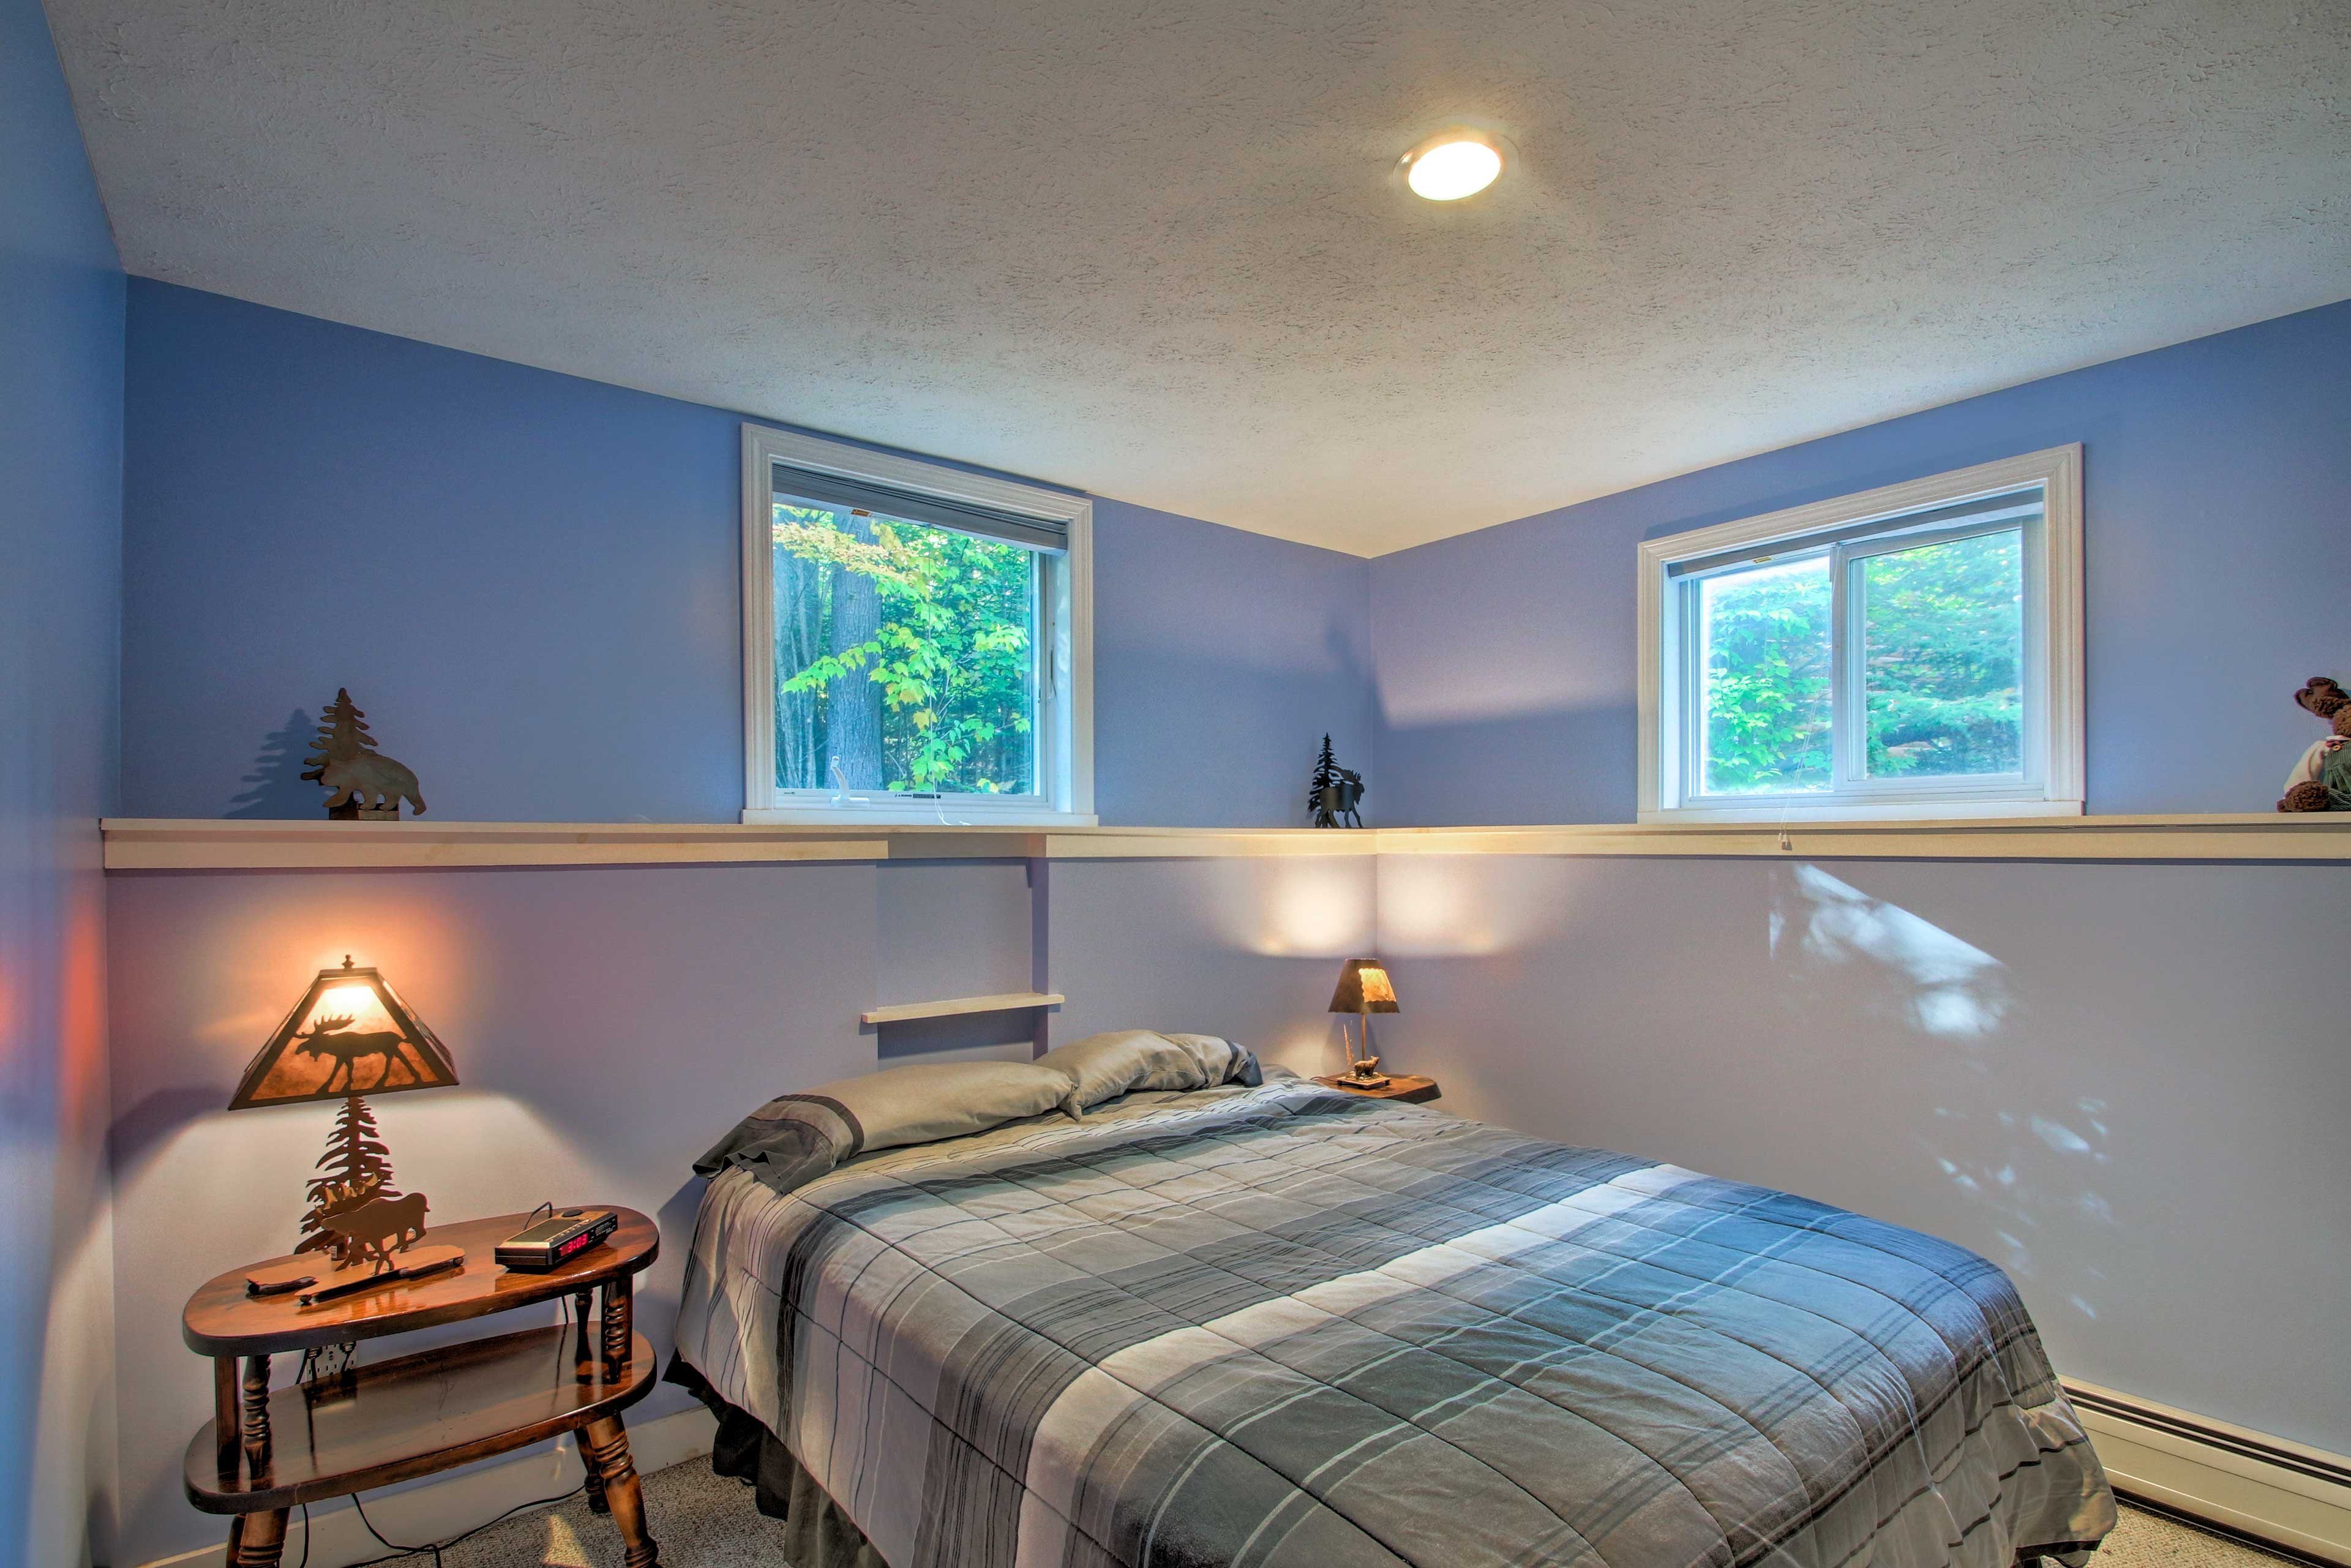 Close the window blinds for a lazy morning in bed.